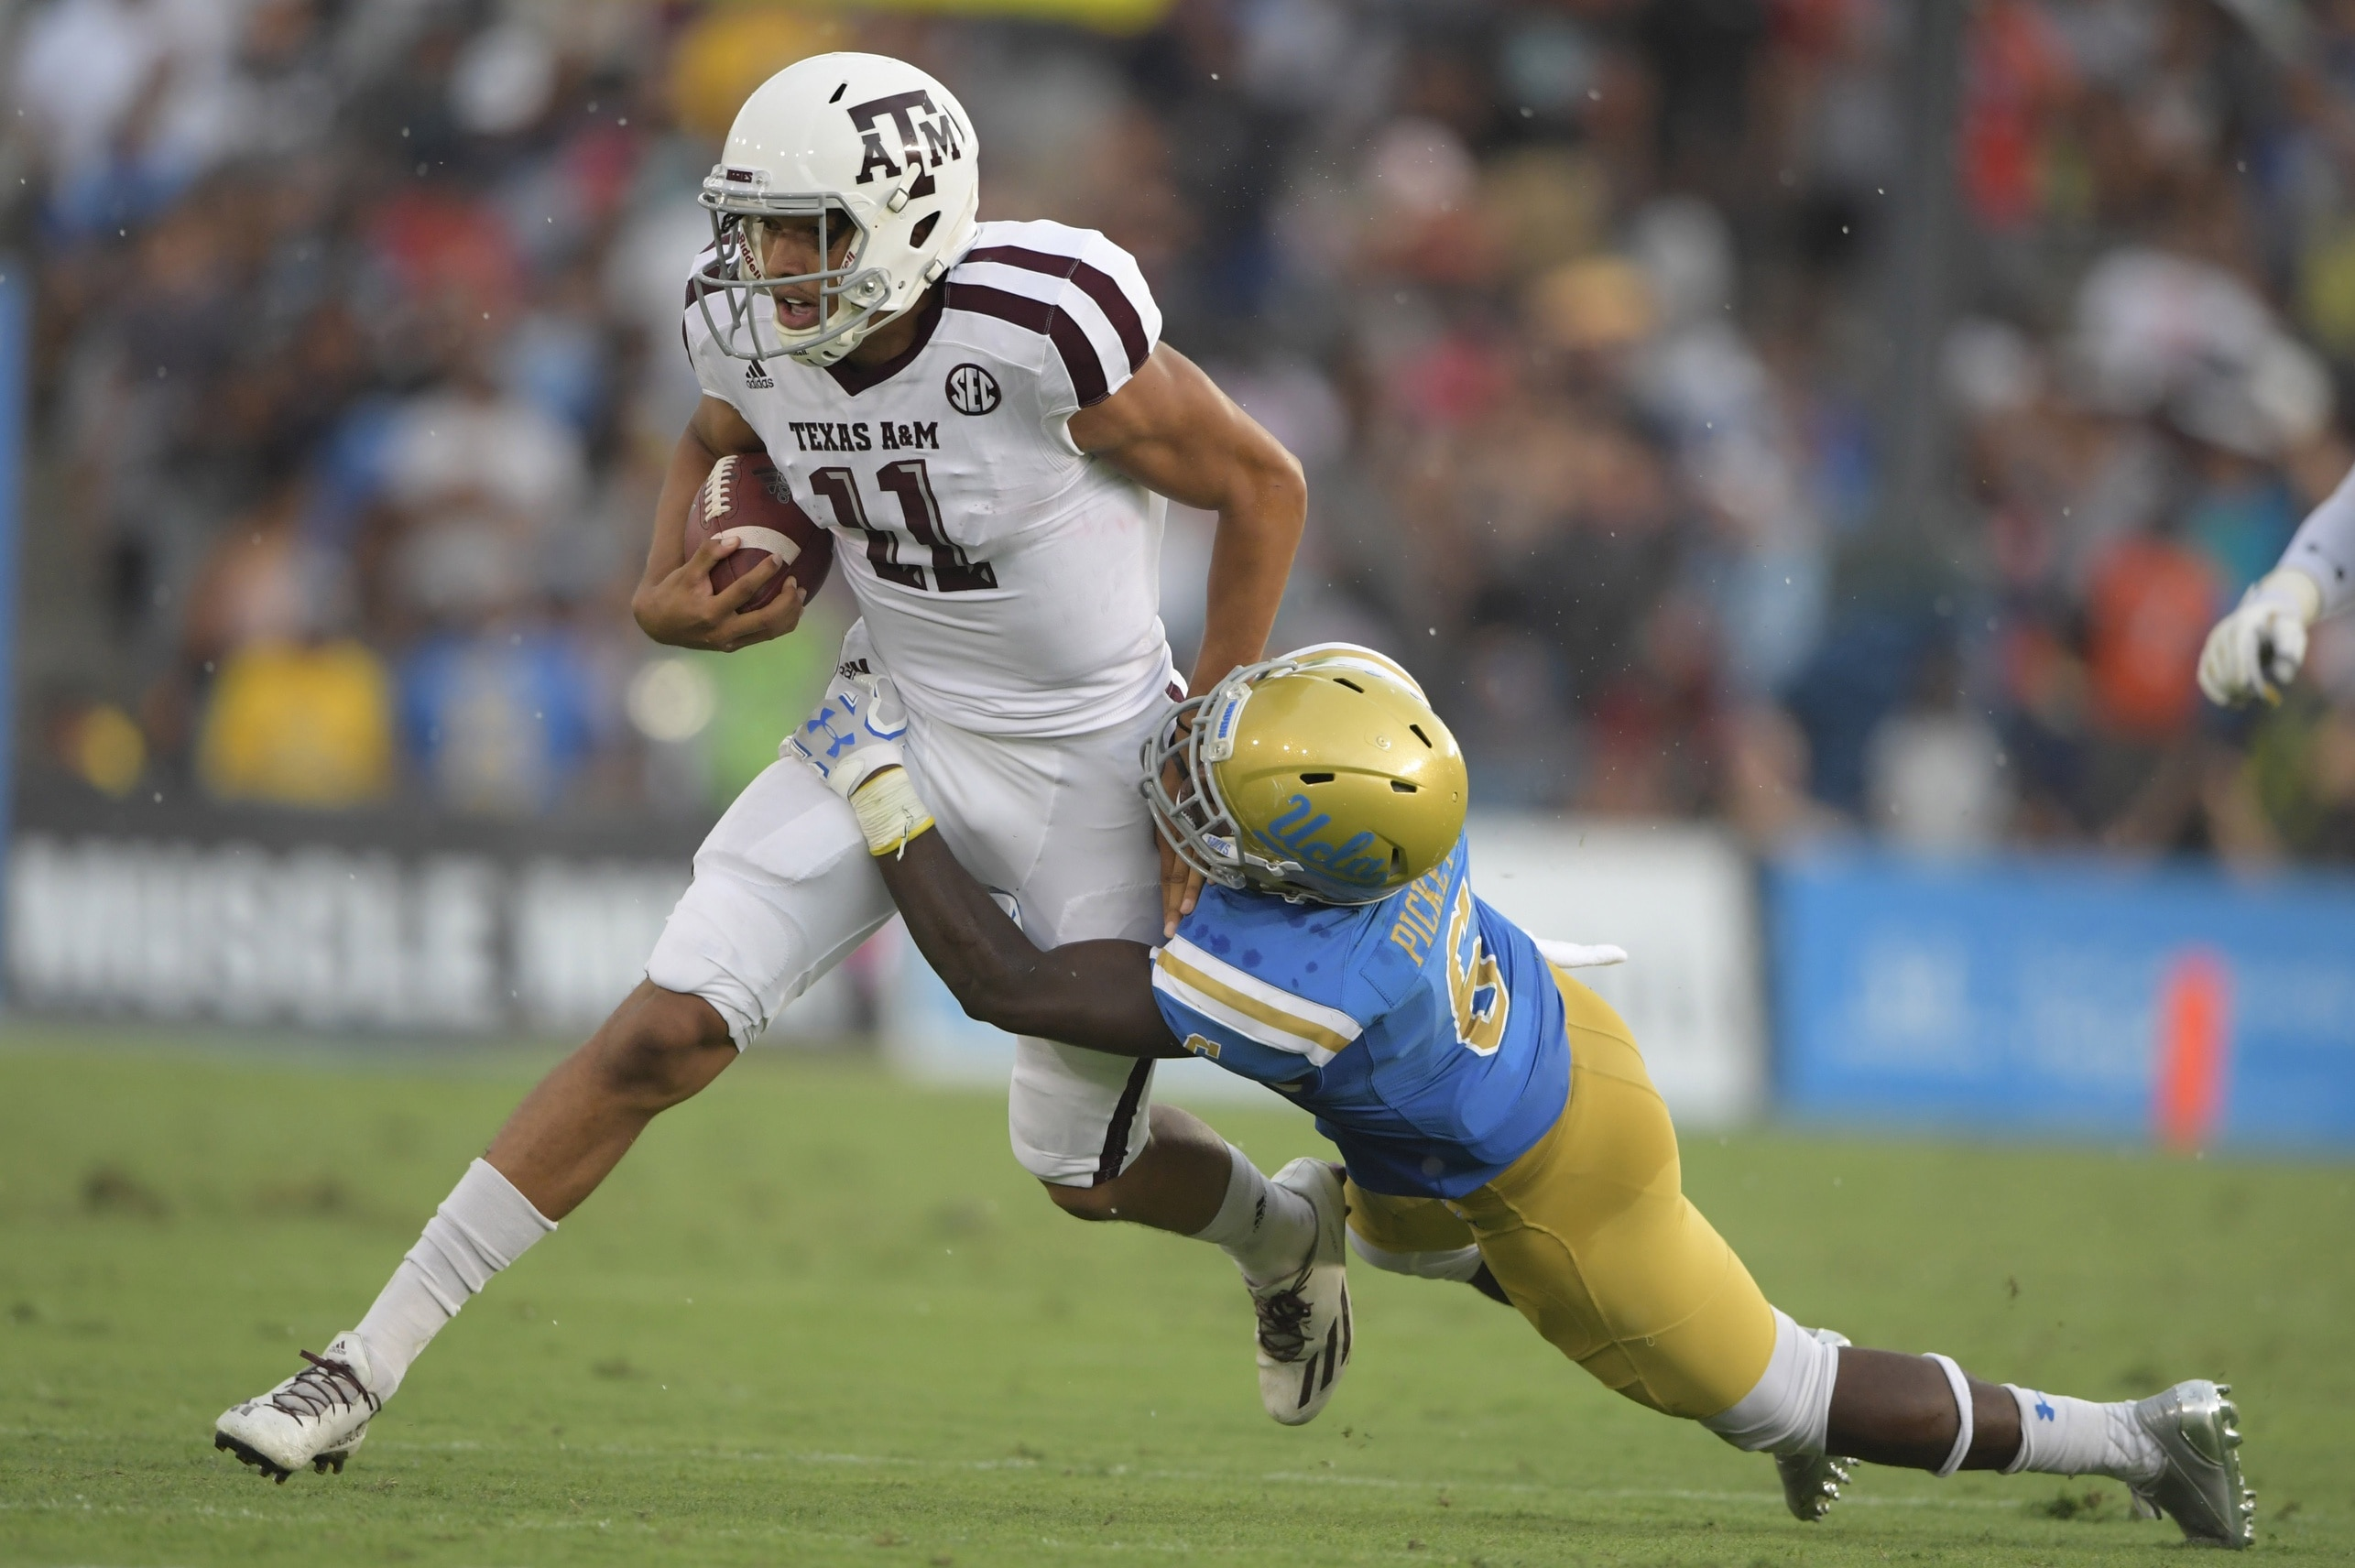 UCLA defense was awful against Texas A&M